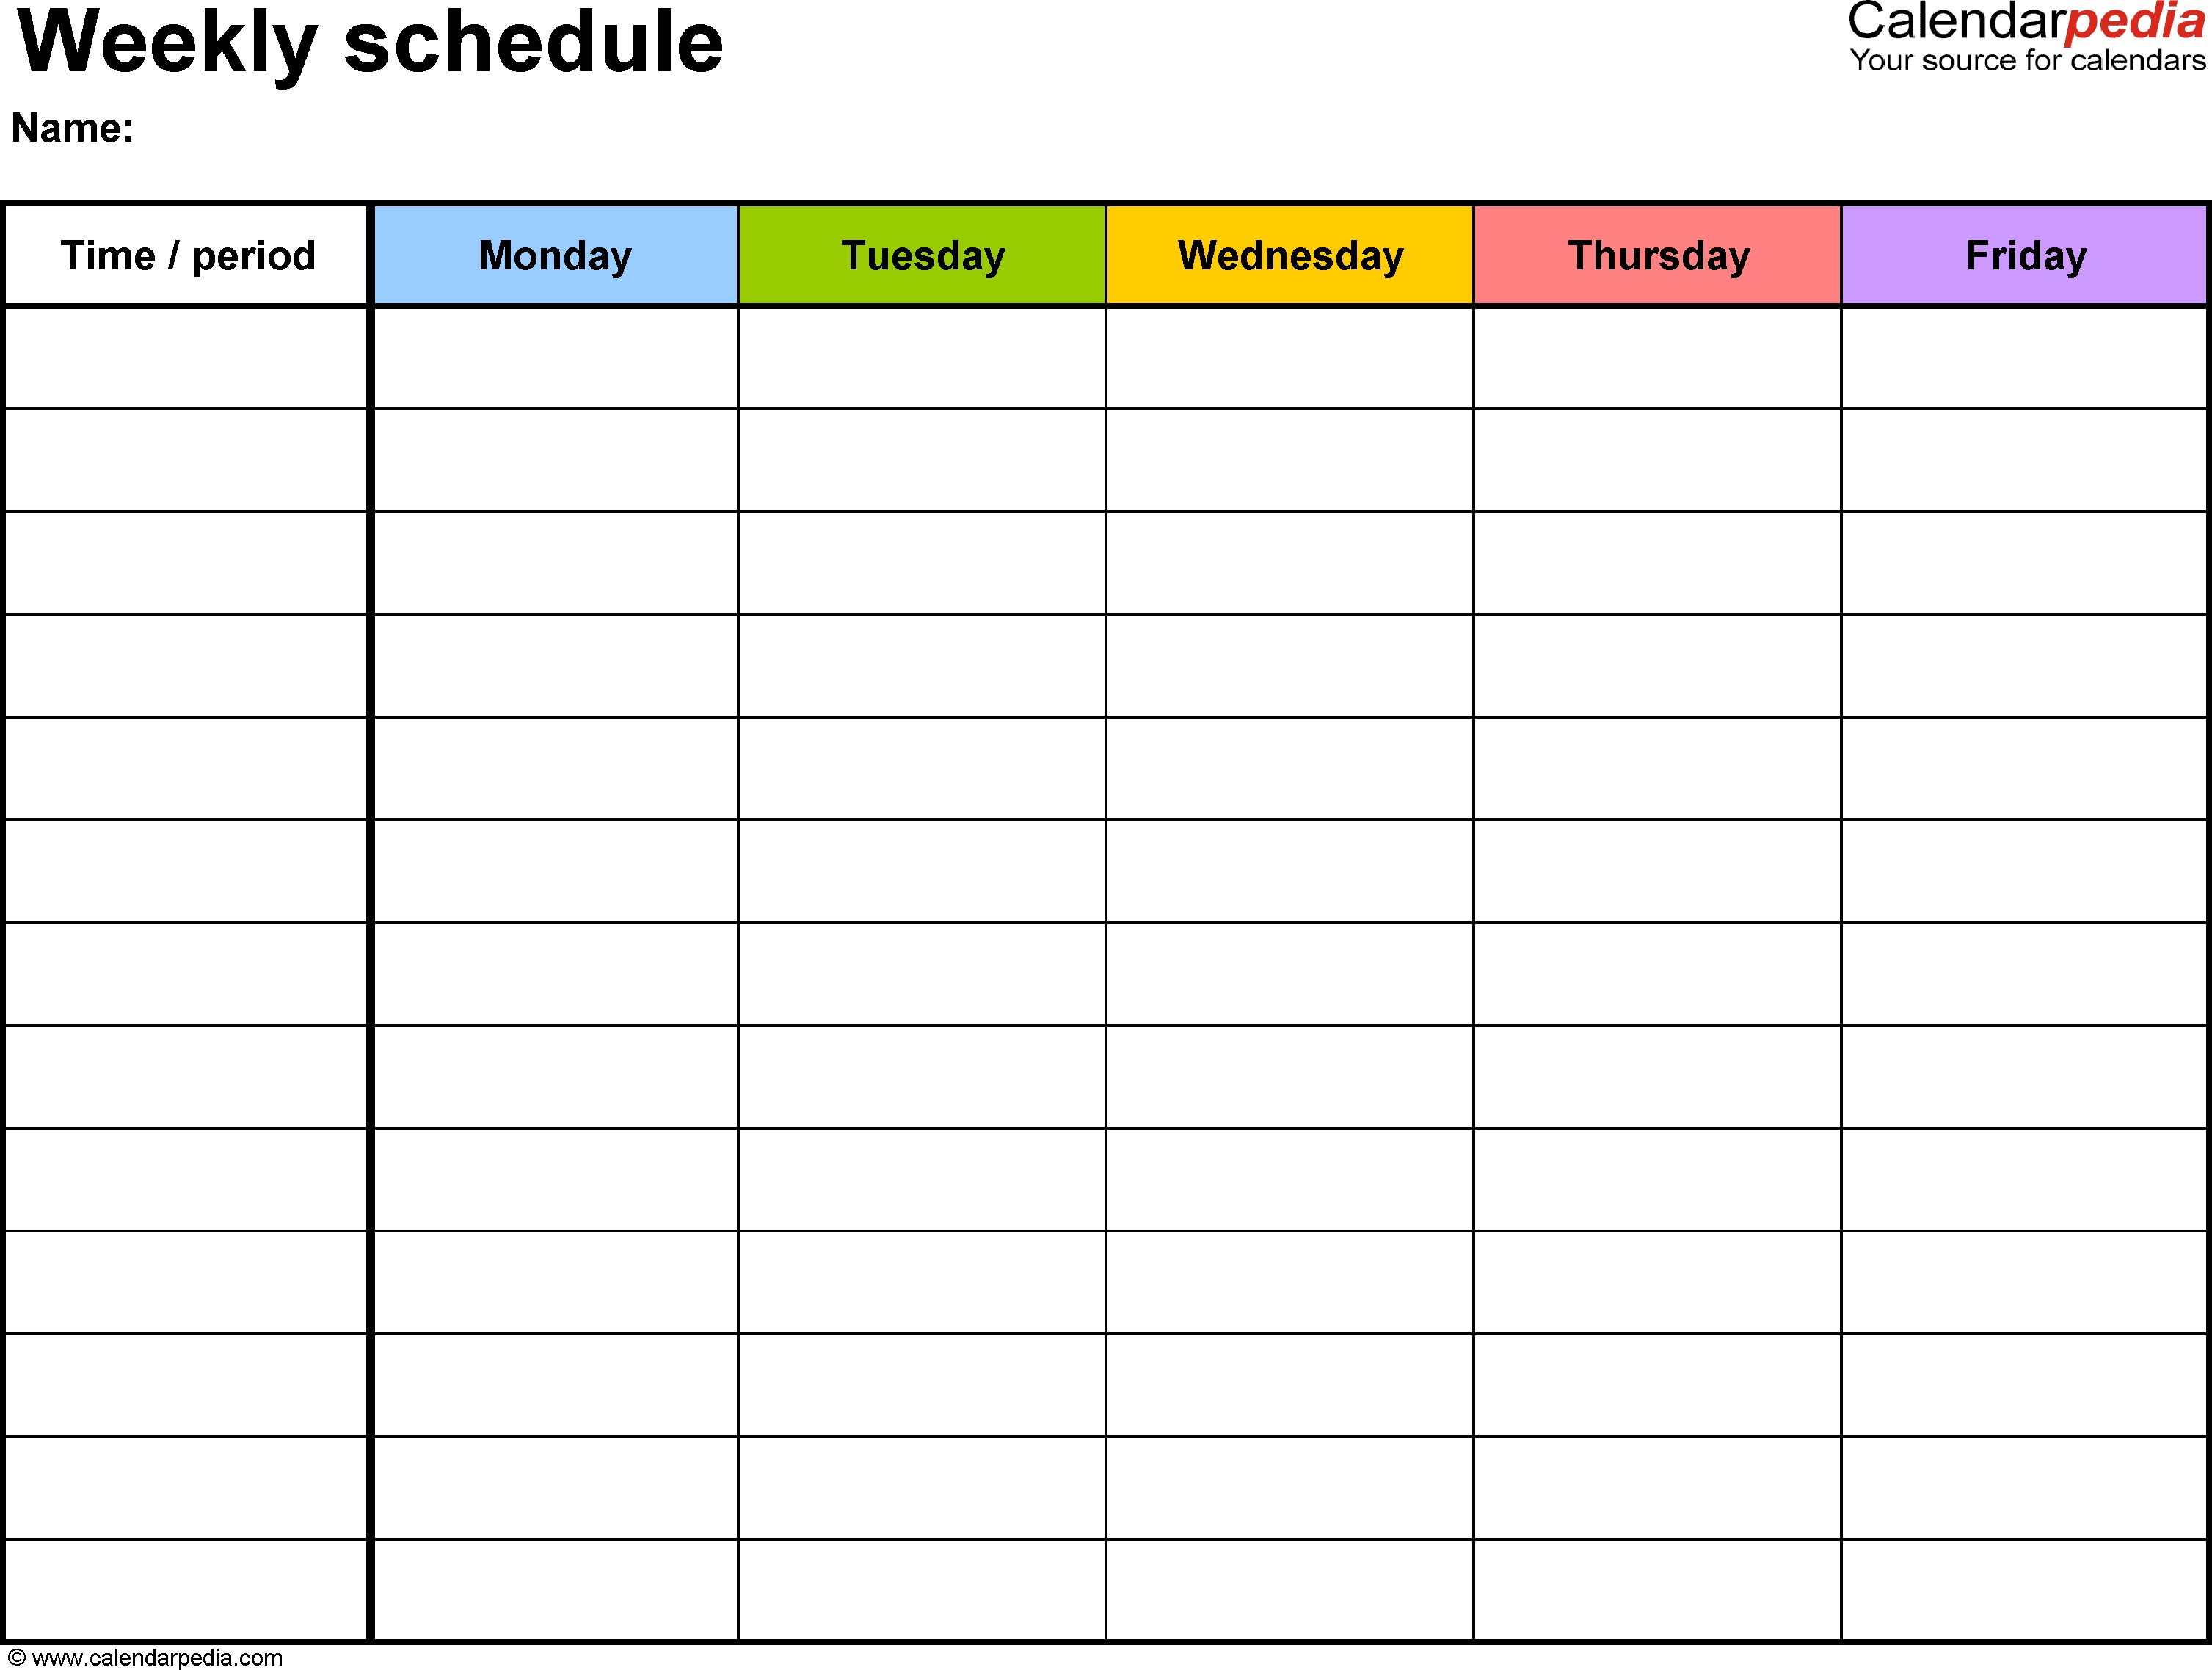 Free Weekly Schedule Templates For Word - 18 Templates within Monday Through Friday Schedule Template